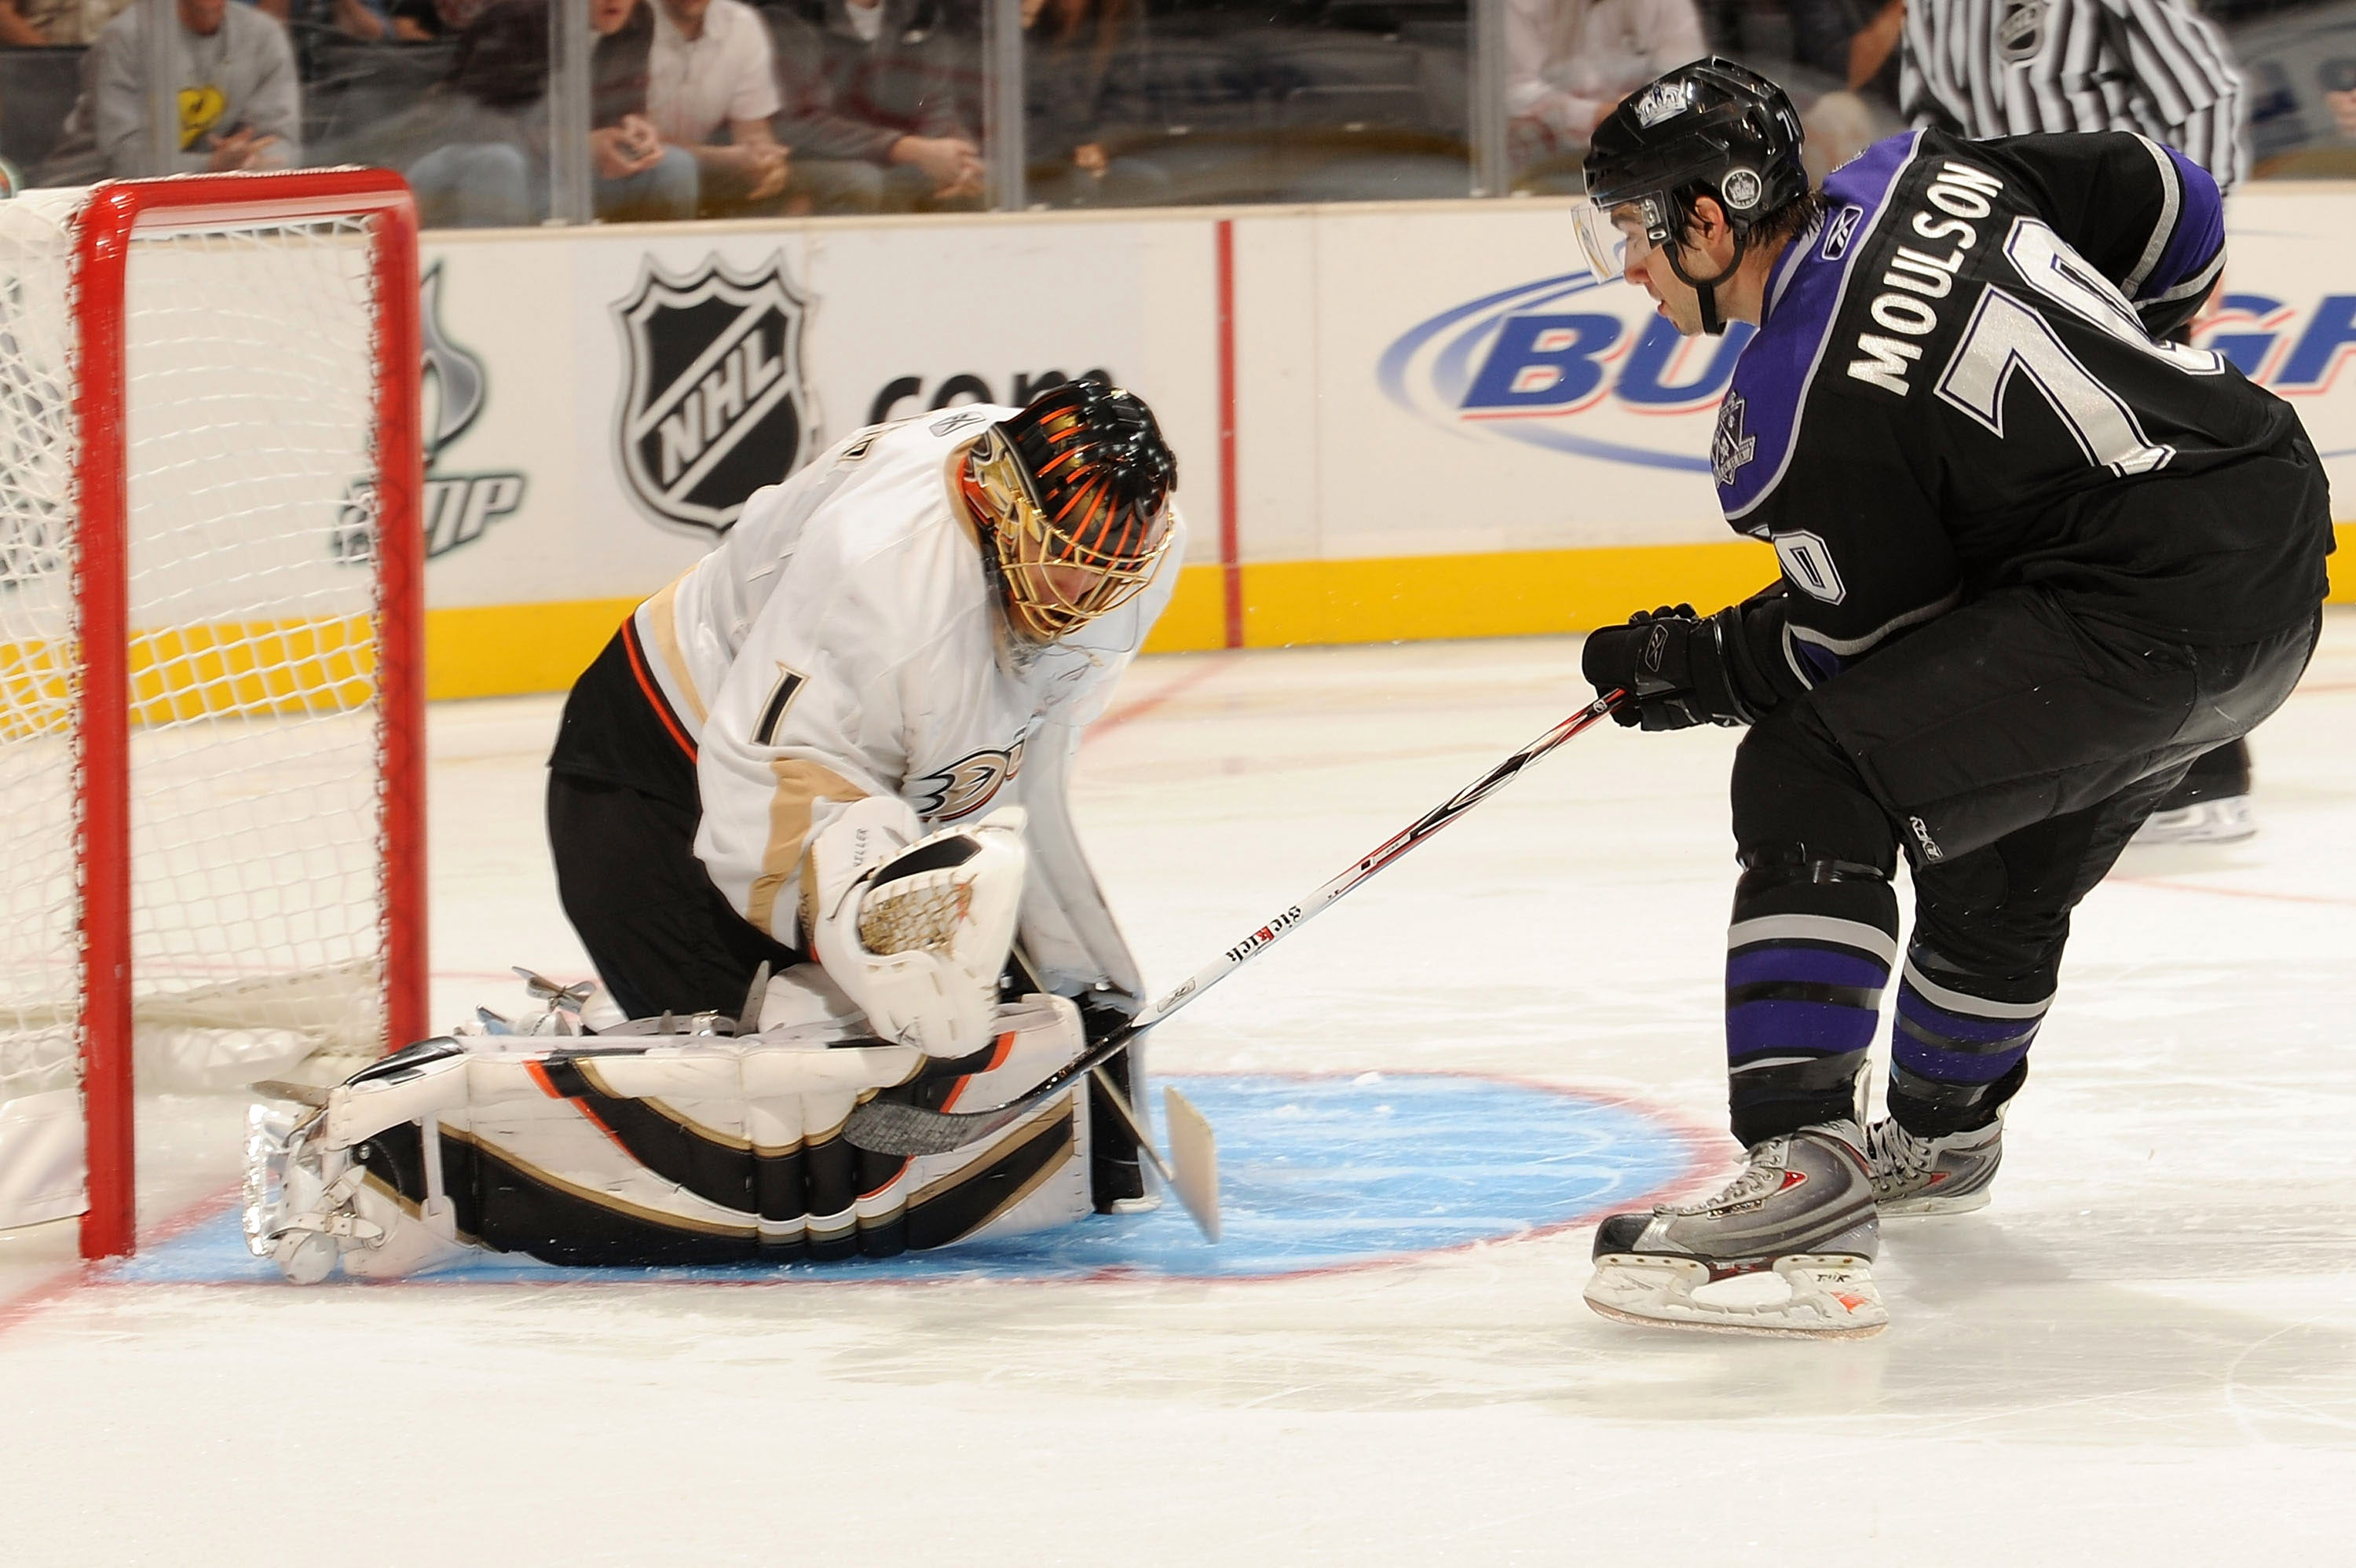 Veteran Forward Matt Moulson Loaned to Reign